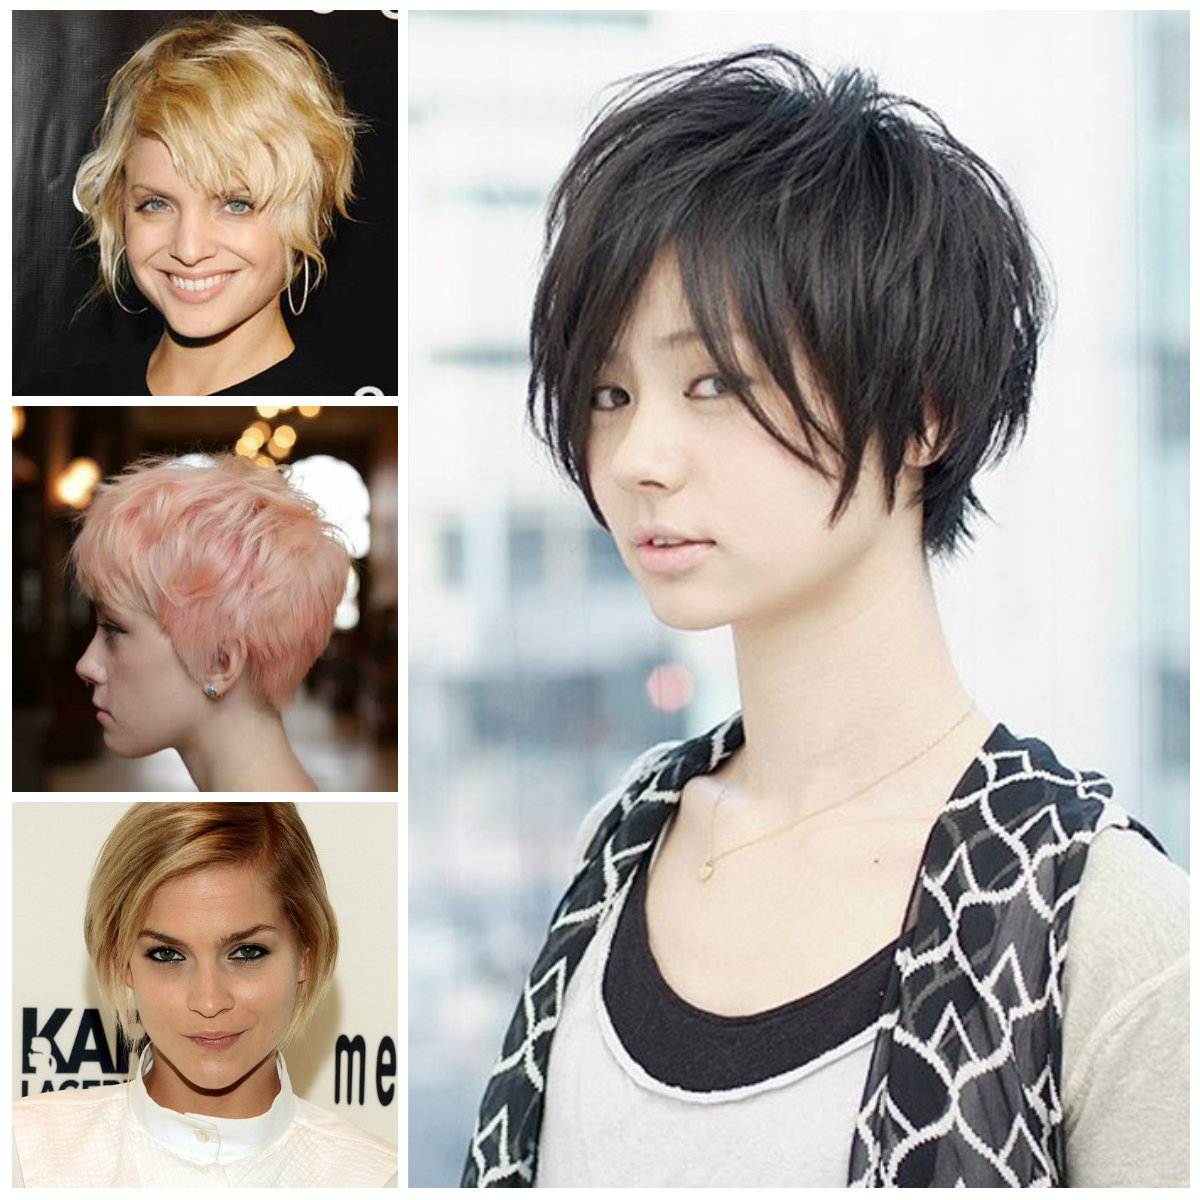 Short Layered Hairstyles To Try In 2016 | 2019 Haircuts, Hairstyles For Short Layered Hairstyles (View 16 of 20)